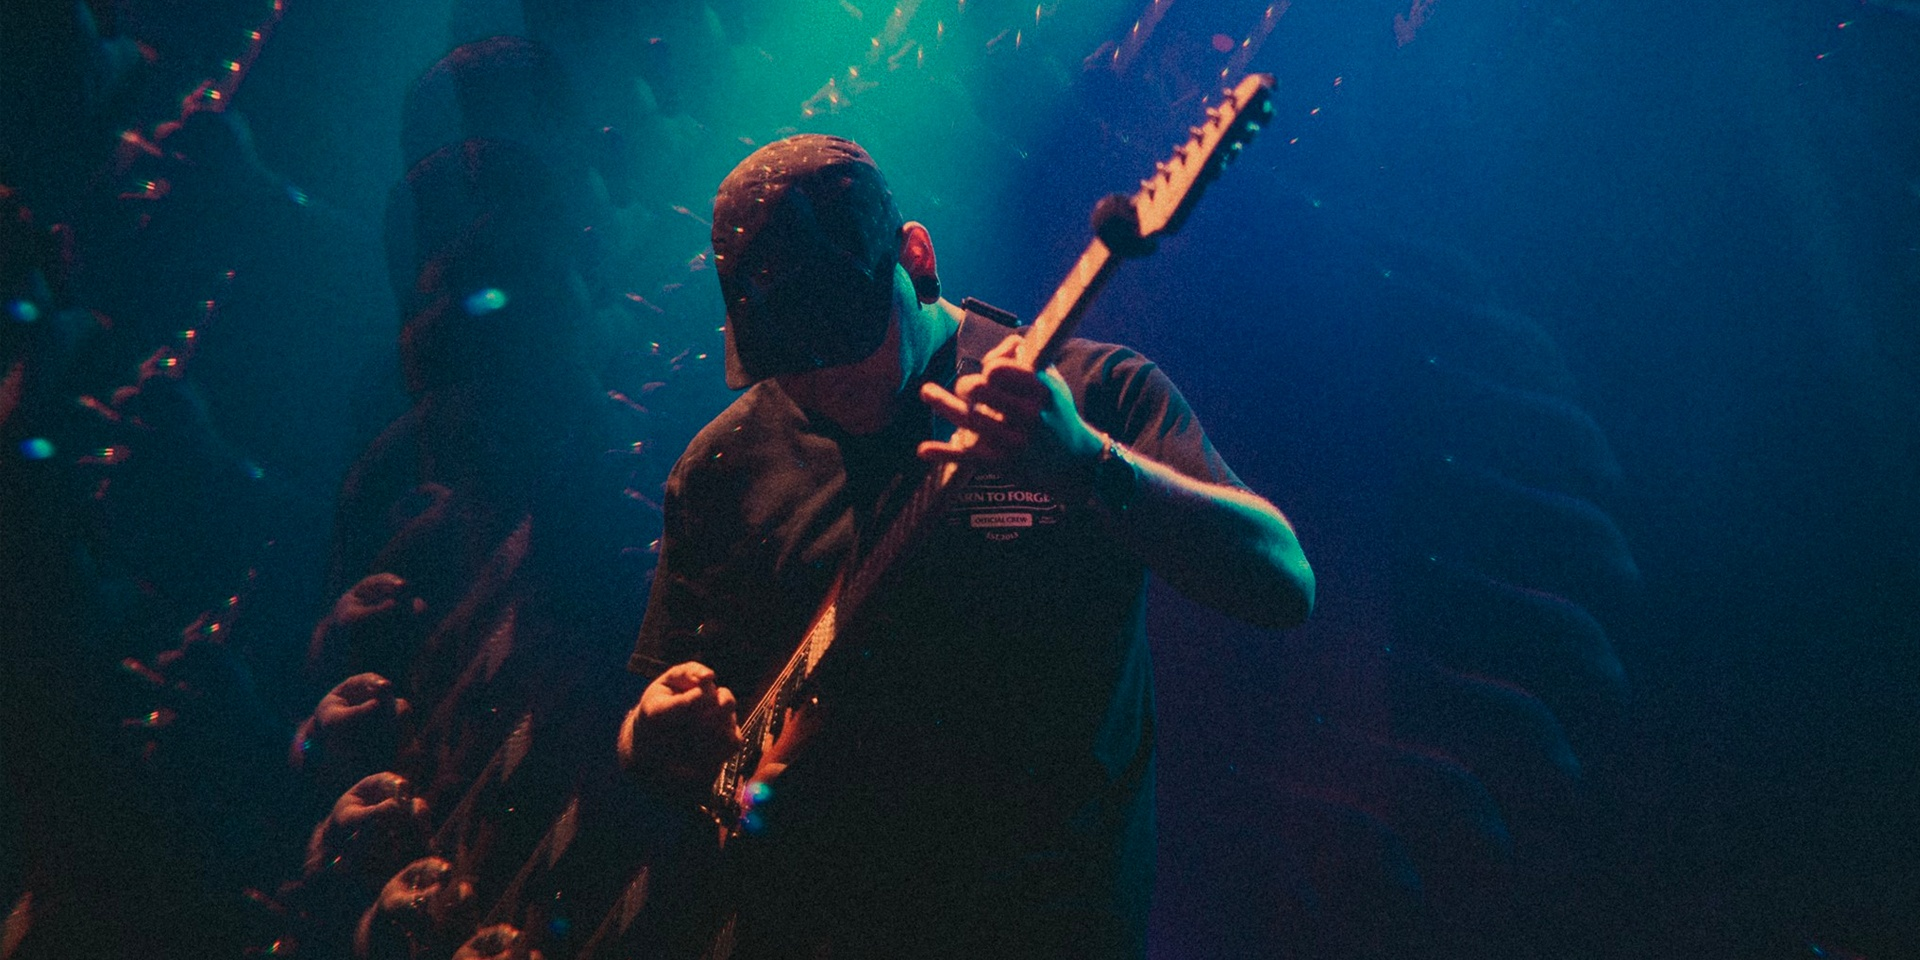 Progressive metal band Intervals to perform in Singapore